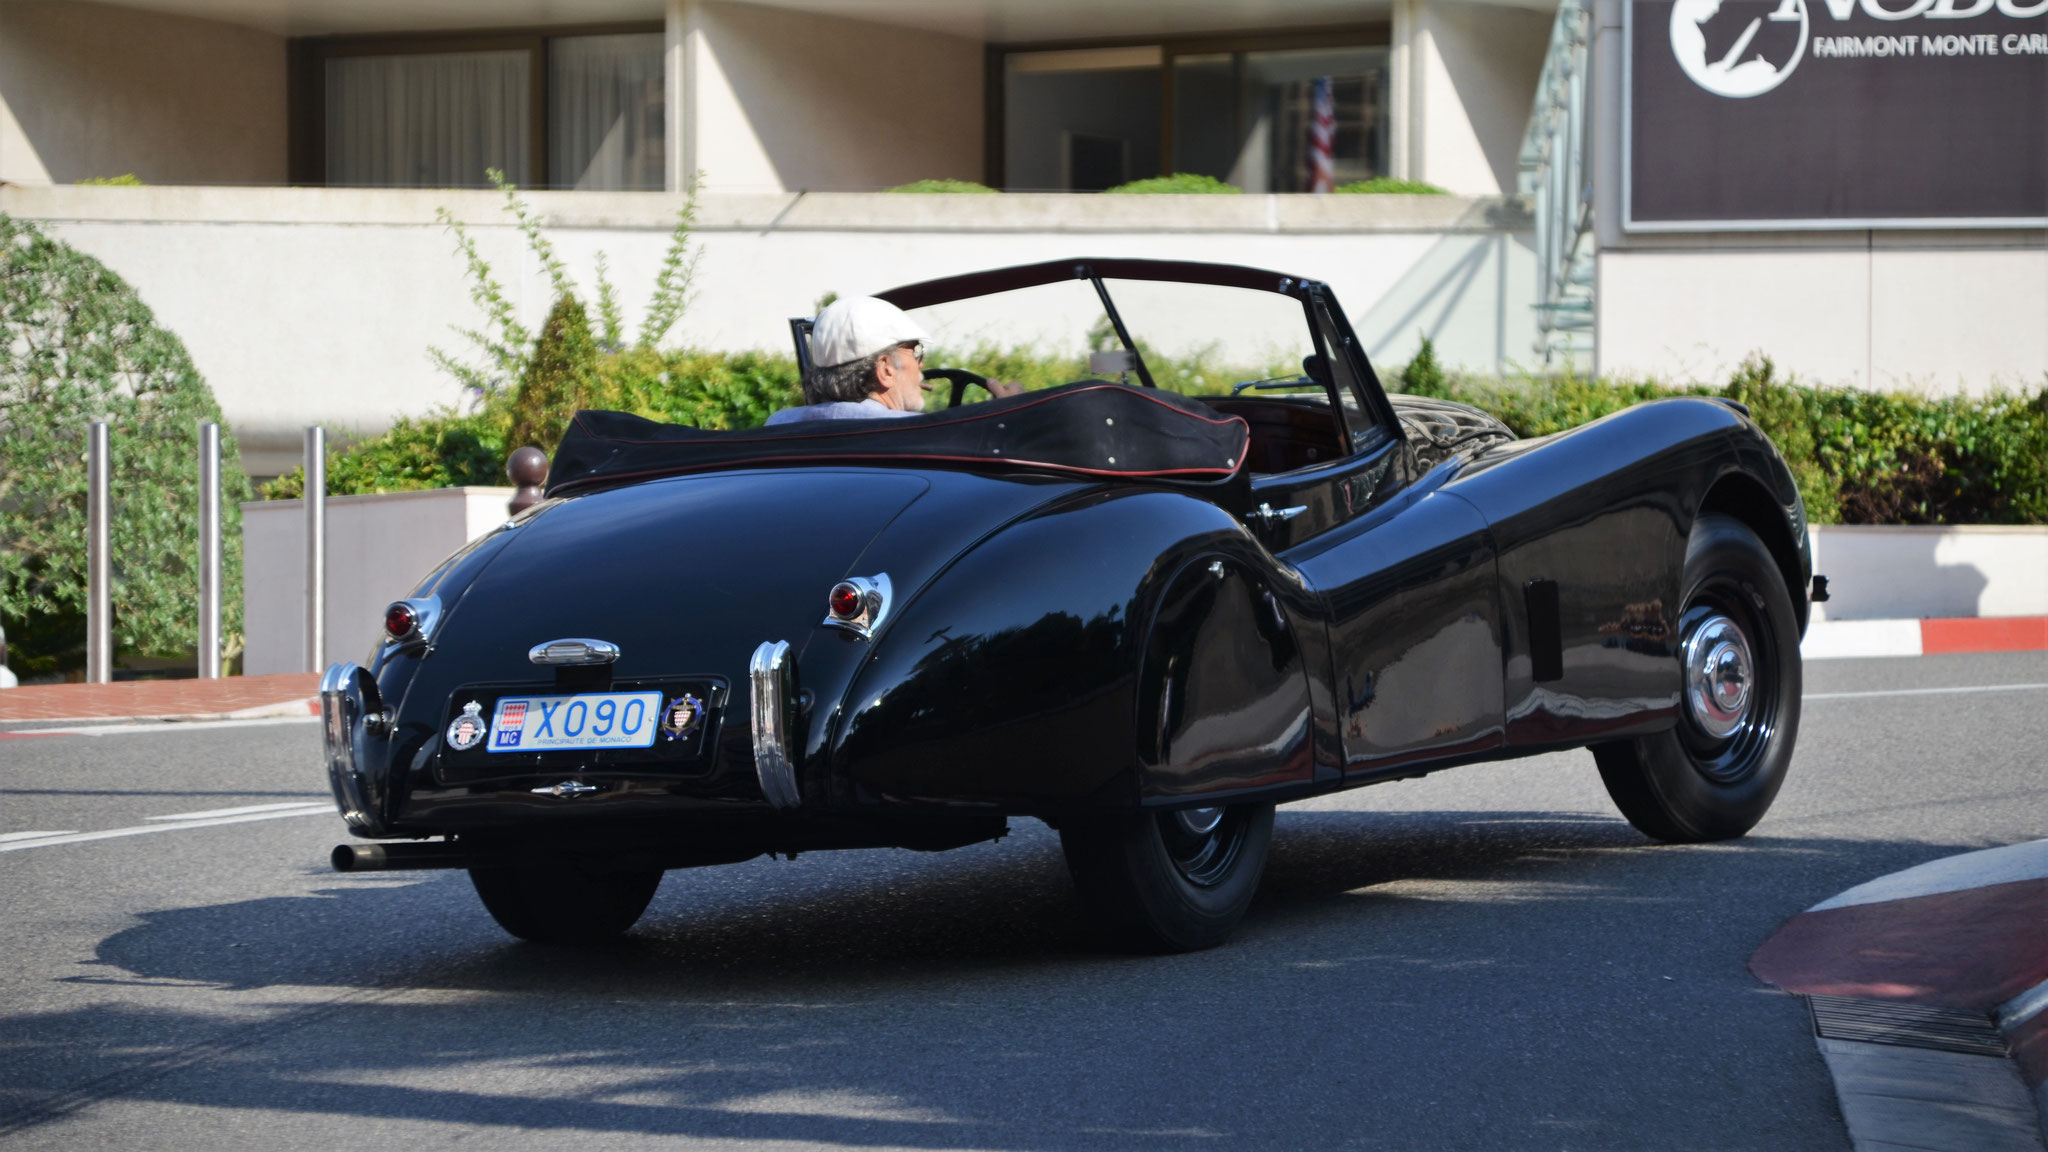 Jaguar XK 120 Cabrio - X090 (MC)